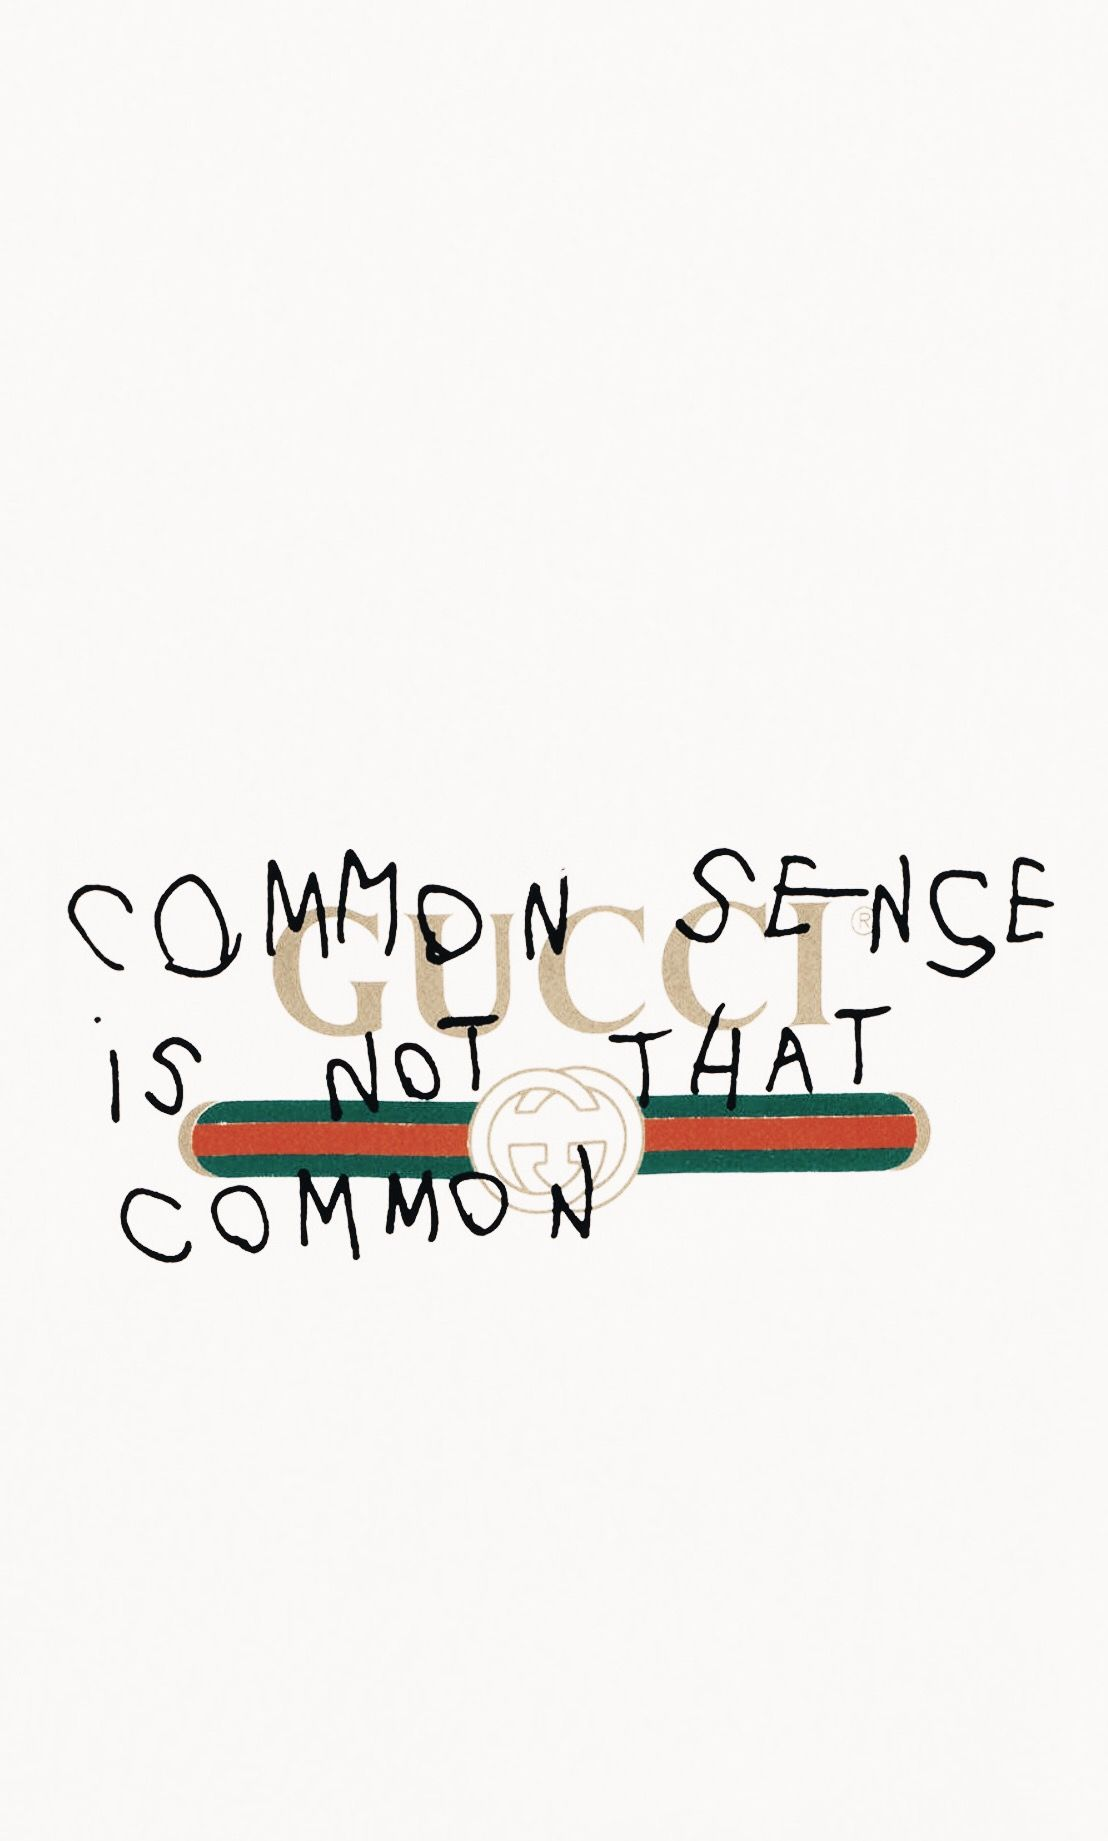 Gucci Common Sense Is Not That Common Wallpaper Gucci Wallpaper Gucci Wallpaper Iphone Hypebeast Wallpaper Hype Wallpaper